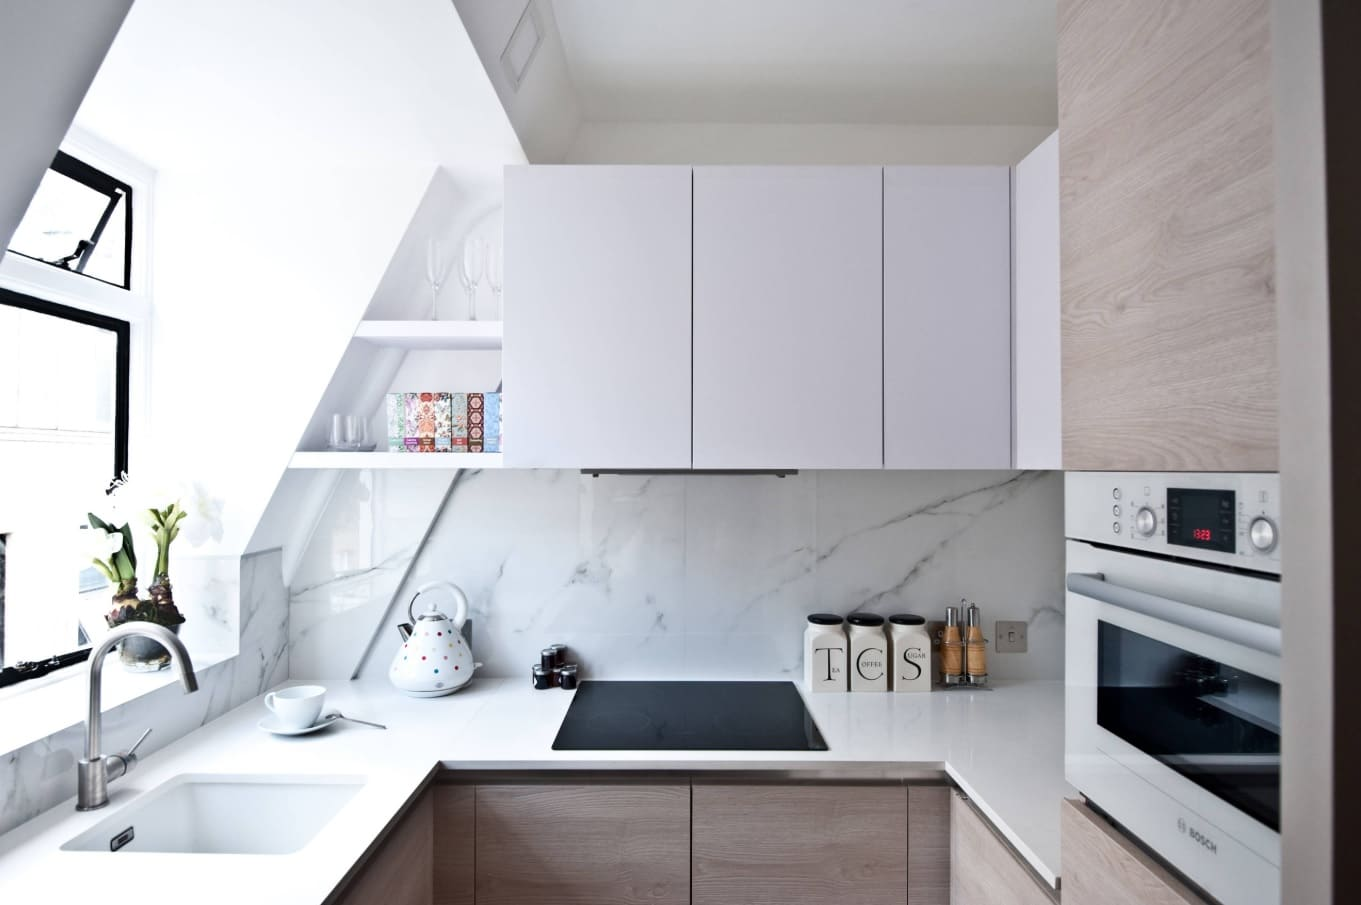 Kitchen Remodel: 3 Tips To Get More Space. Loft styled room with all the functionality